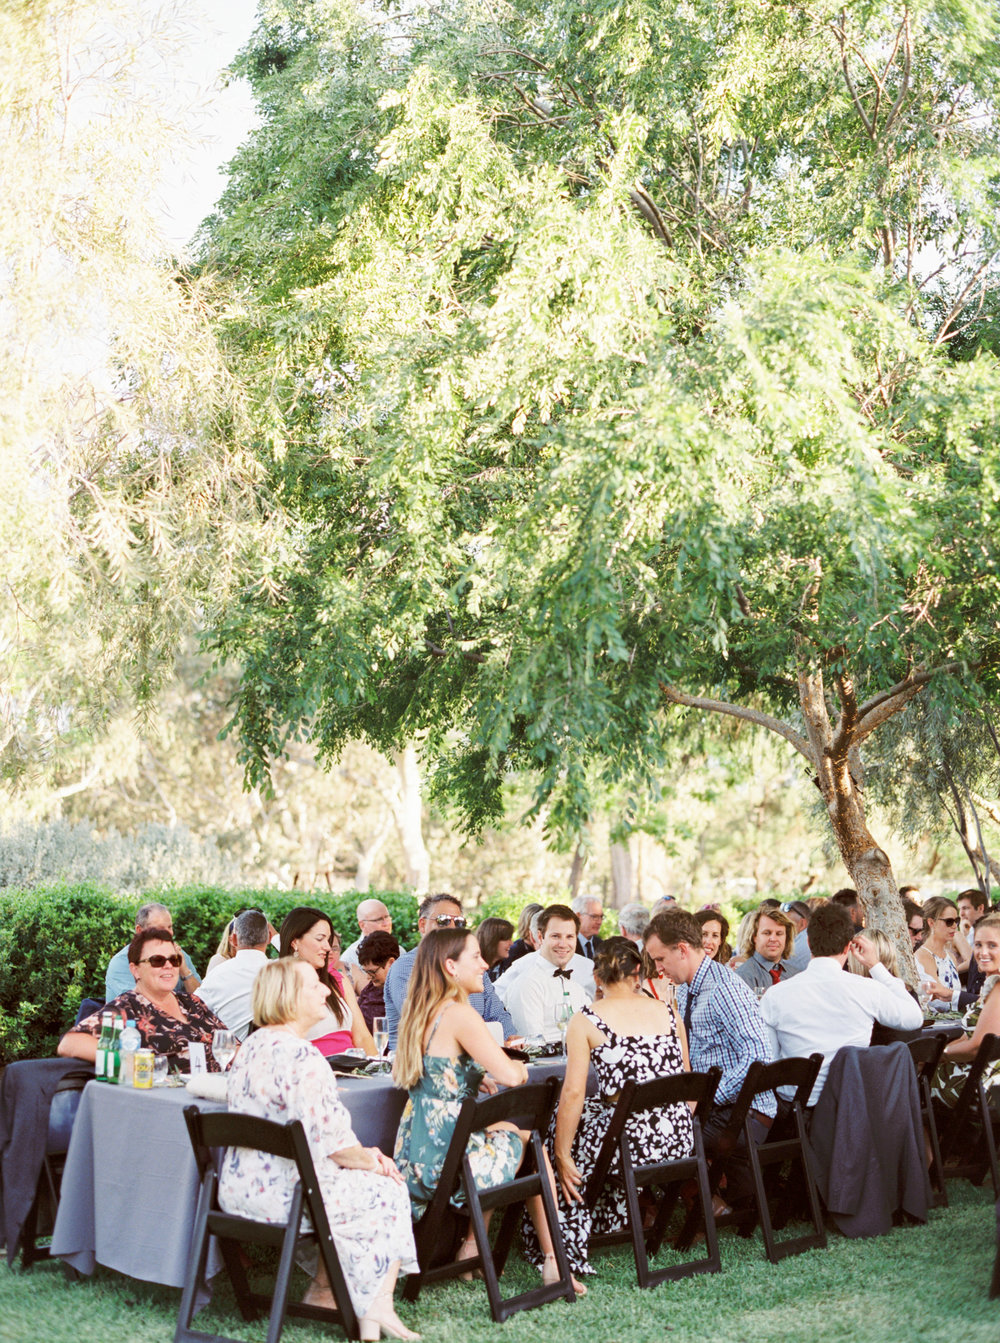 00084- Olive Tree Mediterranean Wedding in Mudgee NSW Australia Fine Art Film Wedding Lifestyle Photographer Sheri McMahon_.jpg